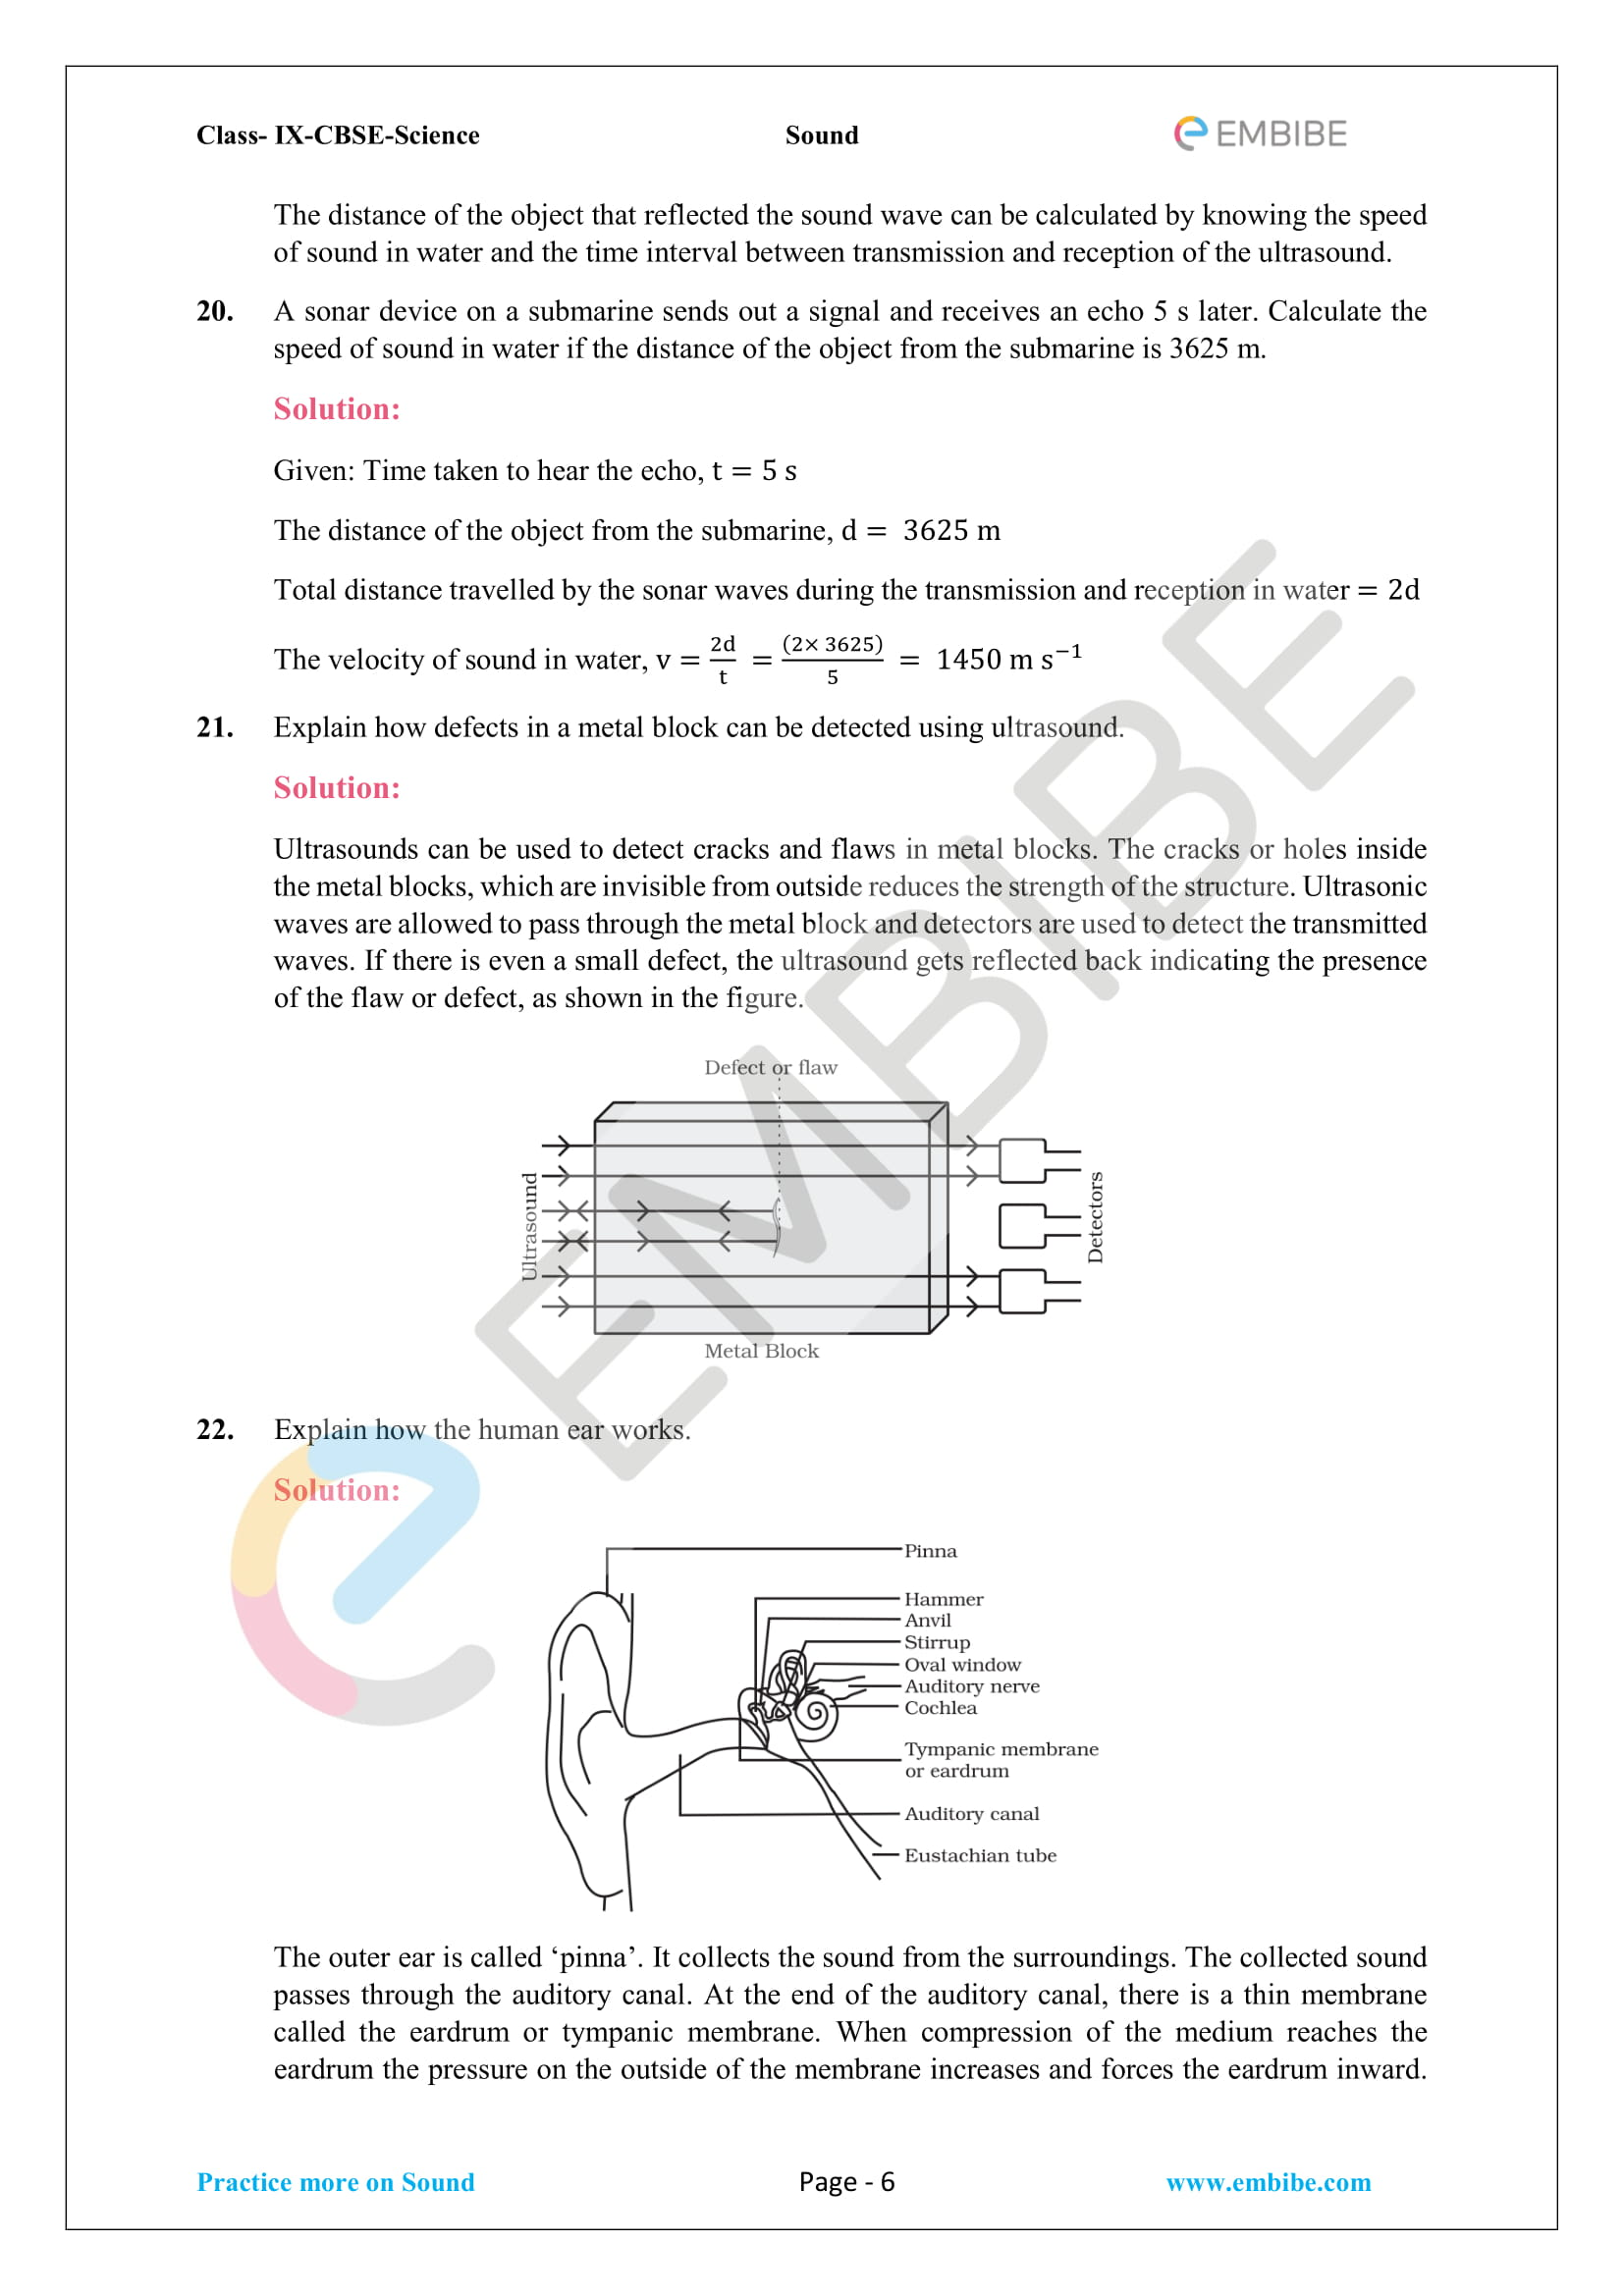 CBSE NCERT Solutions For Class 9 Science Chapter 12 - Sound - 6